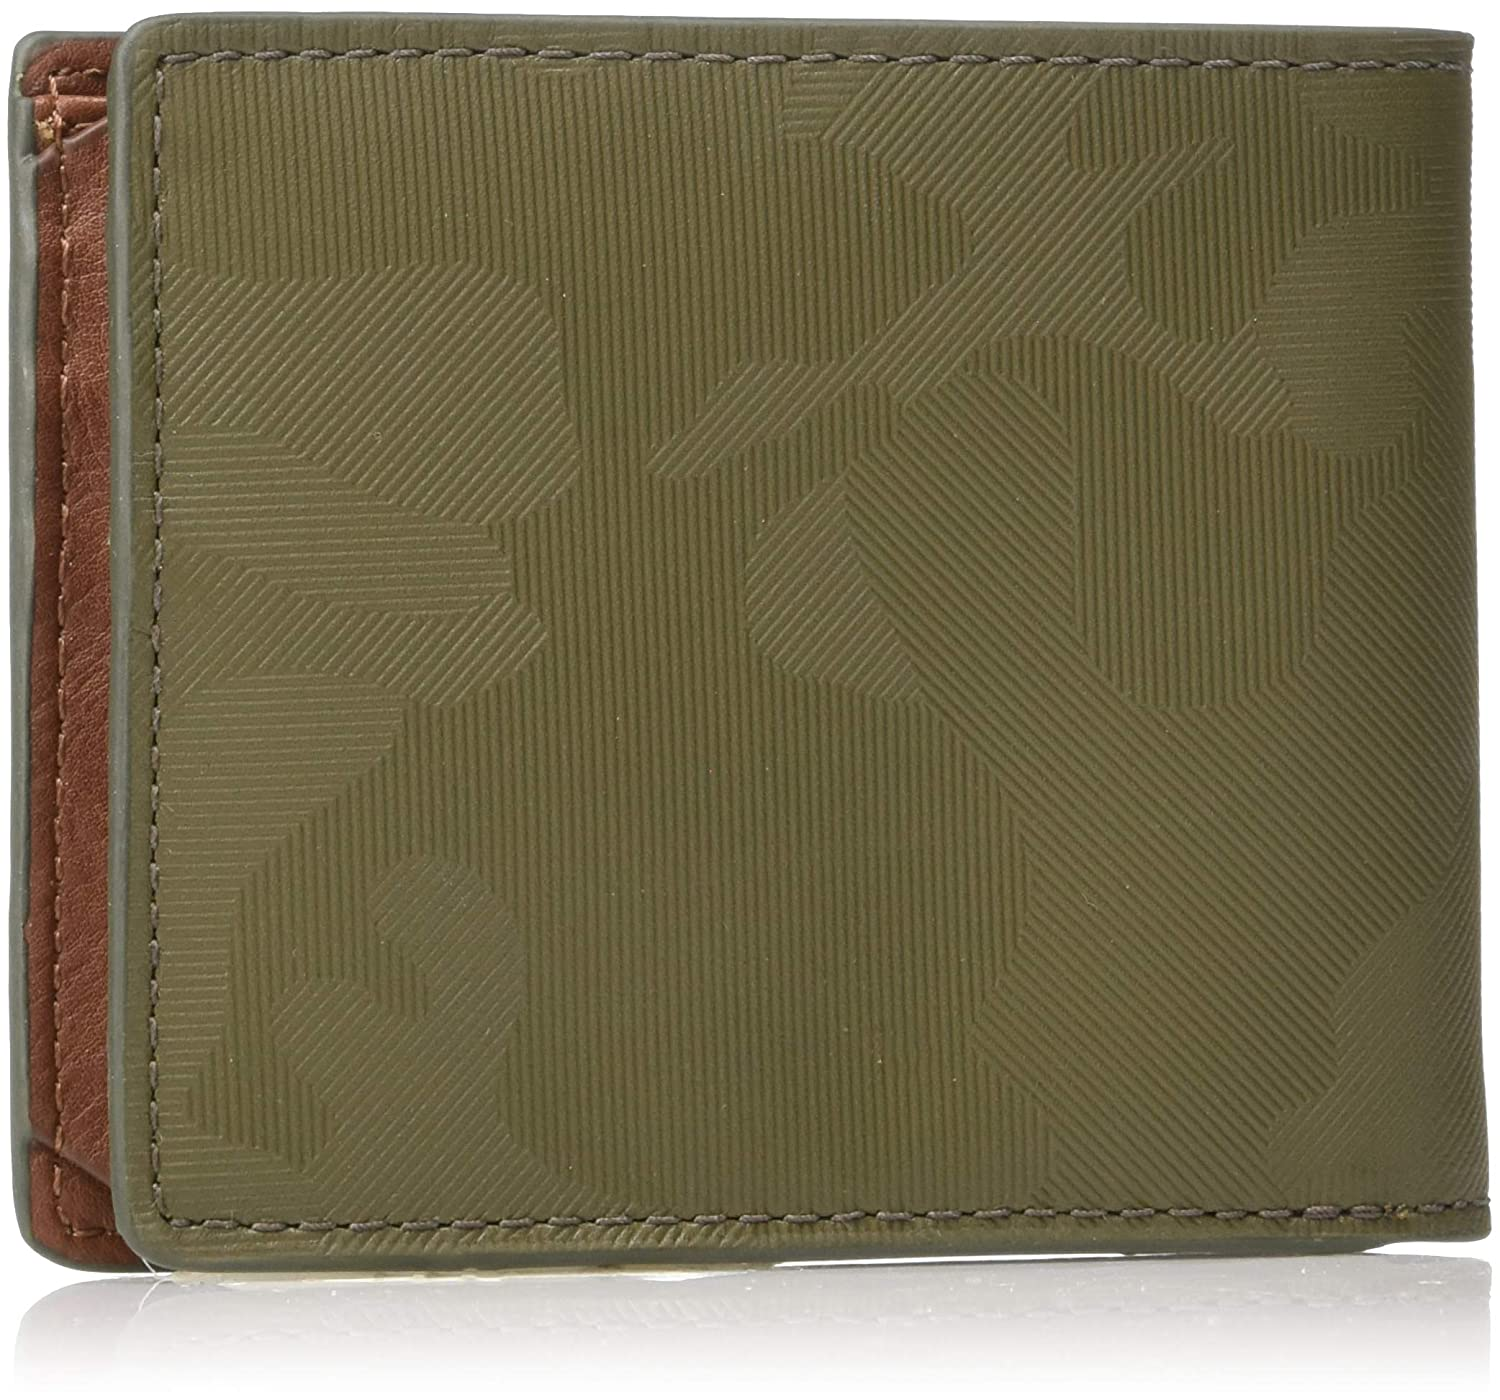 40cd54315bb4 Fossil Men's Jerome Leather Bifold Flip ID Wallet